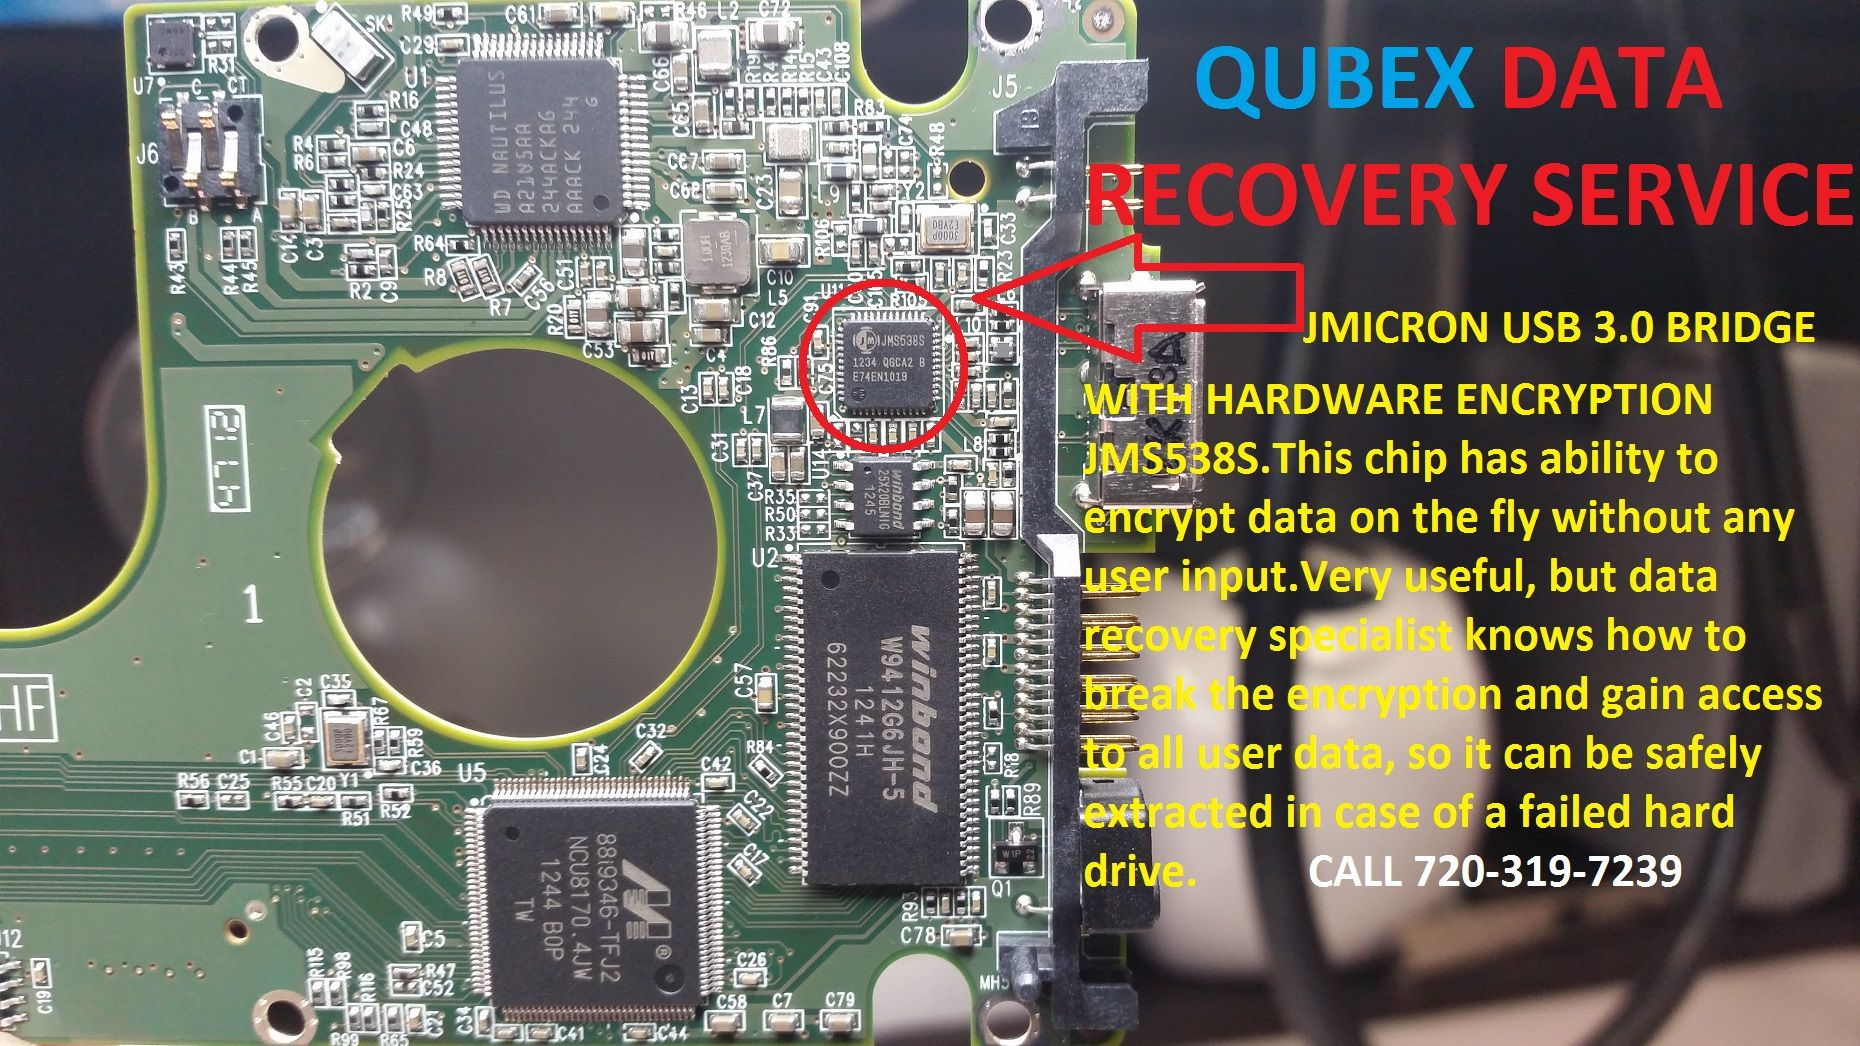 Bridge Chip Is Jmicrom Jms538s Wd Usually Uses Either Initio Sas Sata Controller With Encryption Jmicron Or Symwave